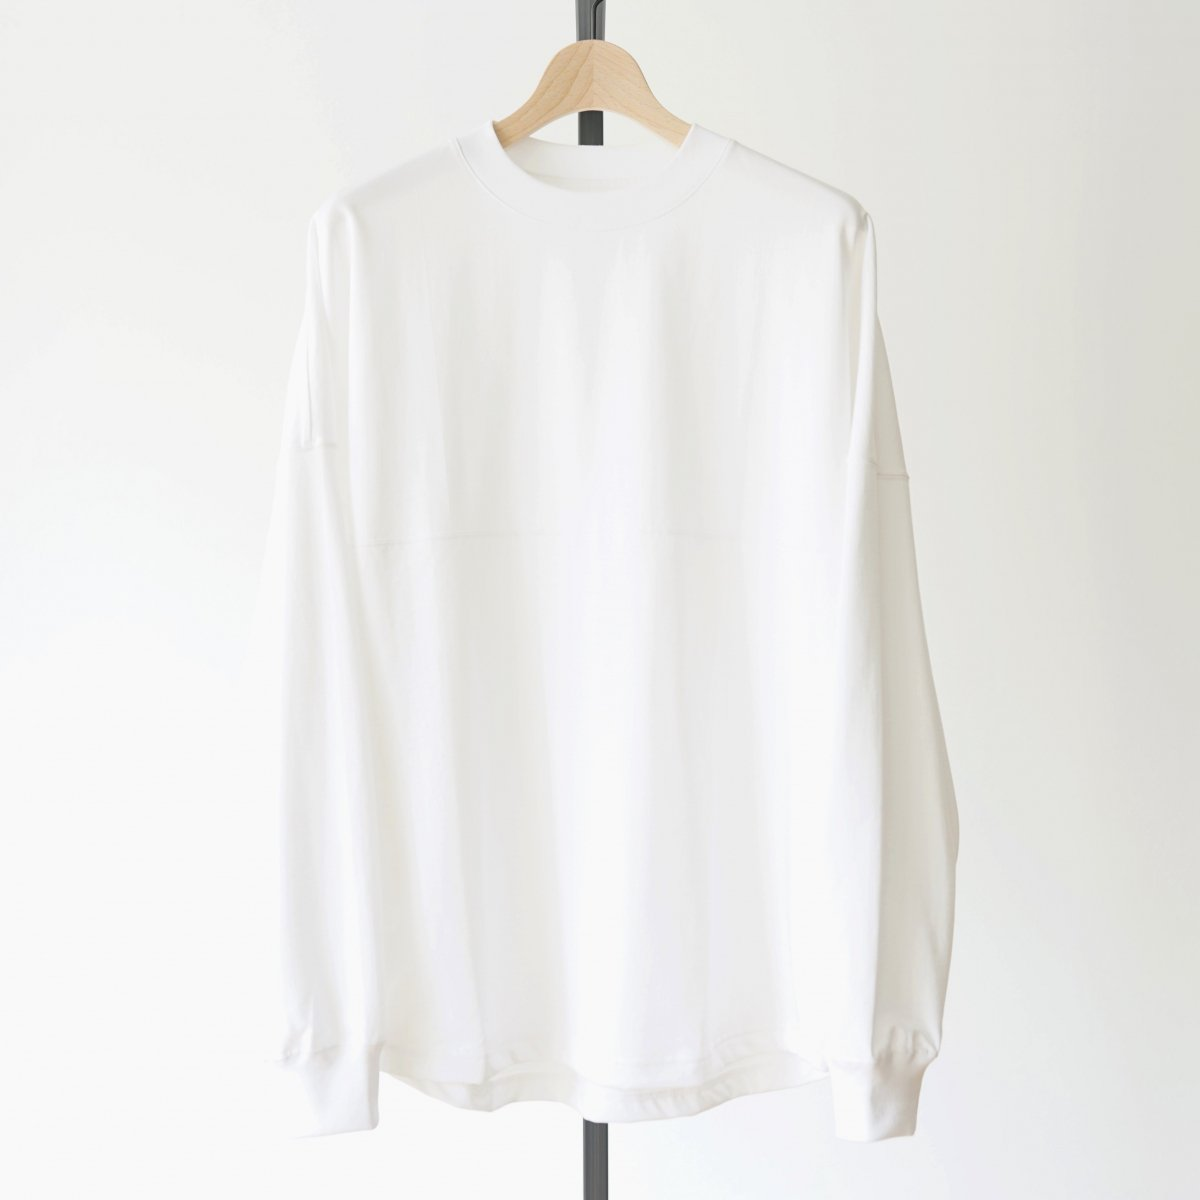 【unfil】ORGANIC COTTON LONG SLEEVE TEE - WHITE